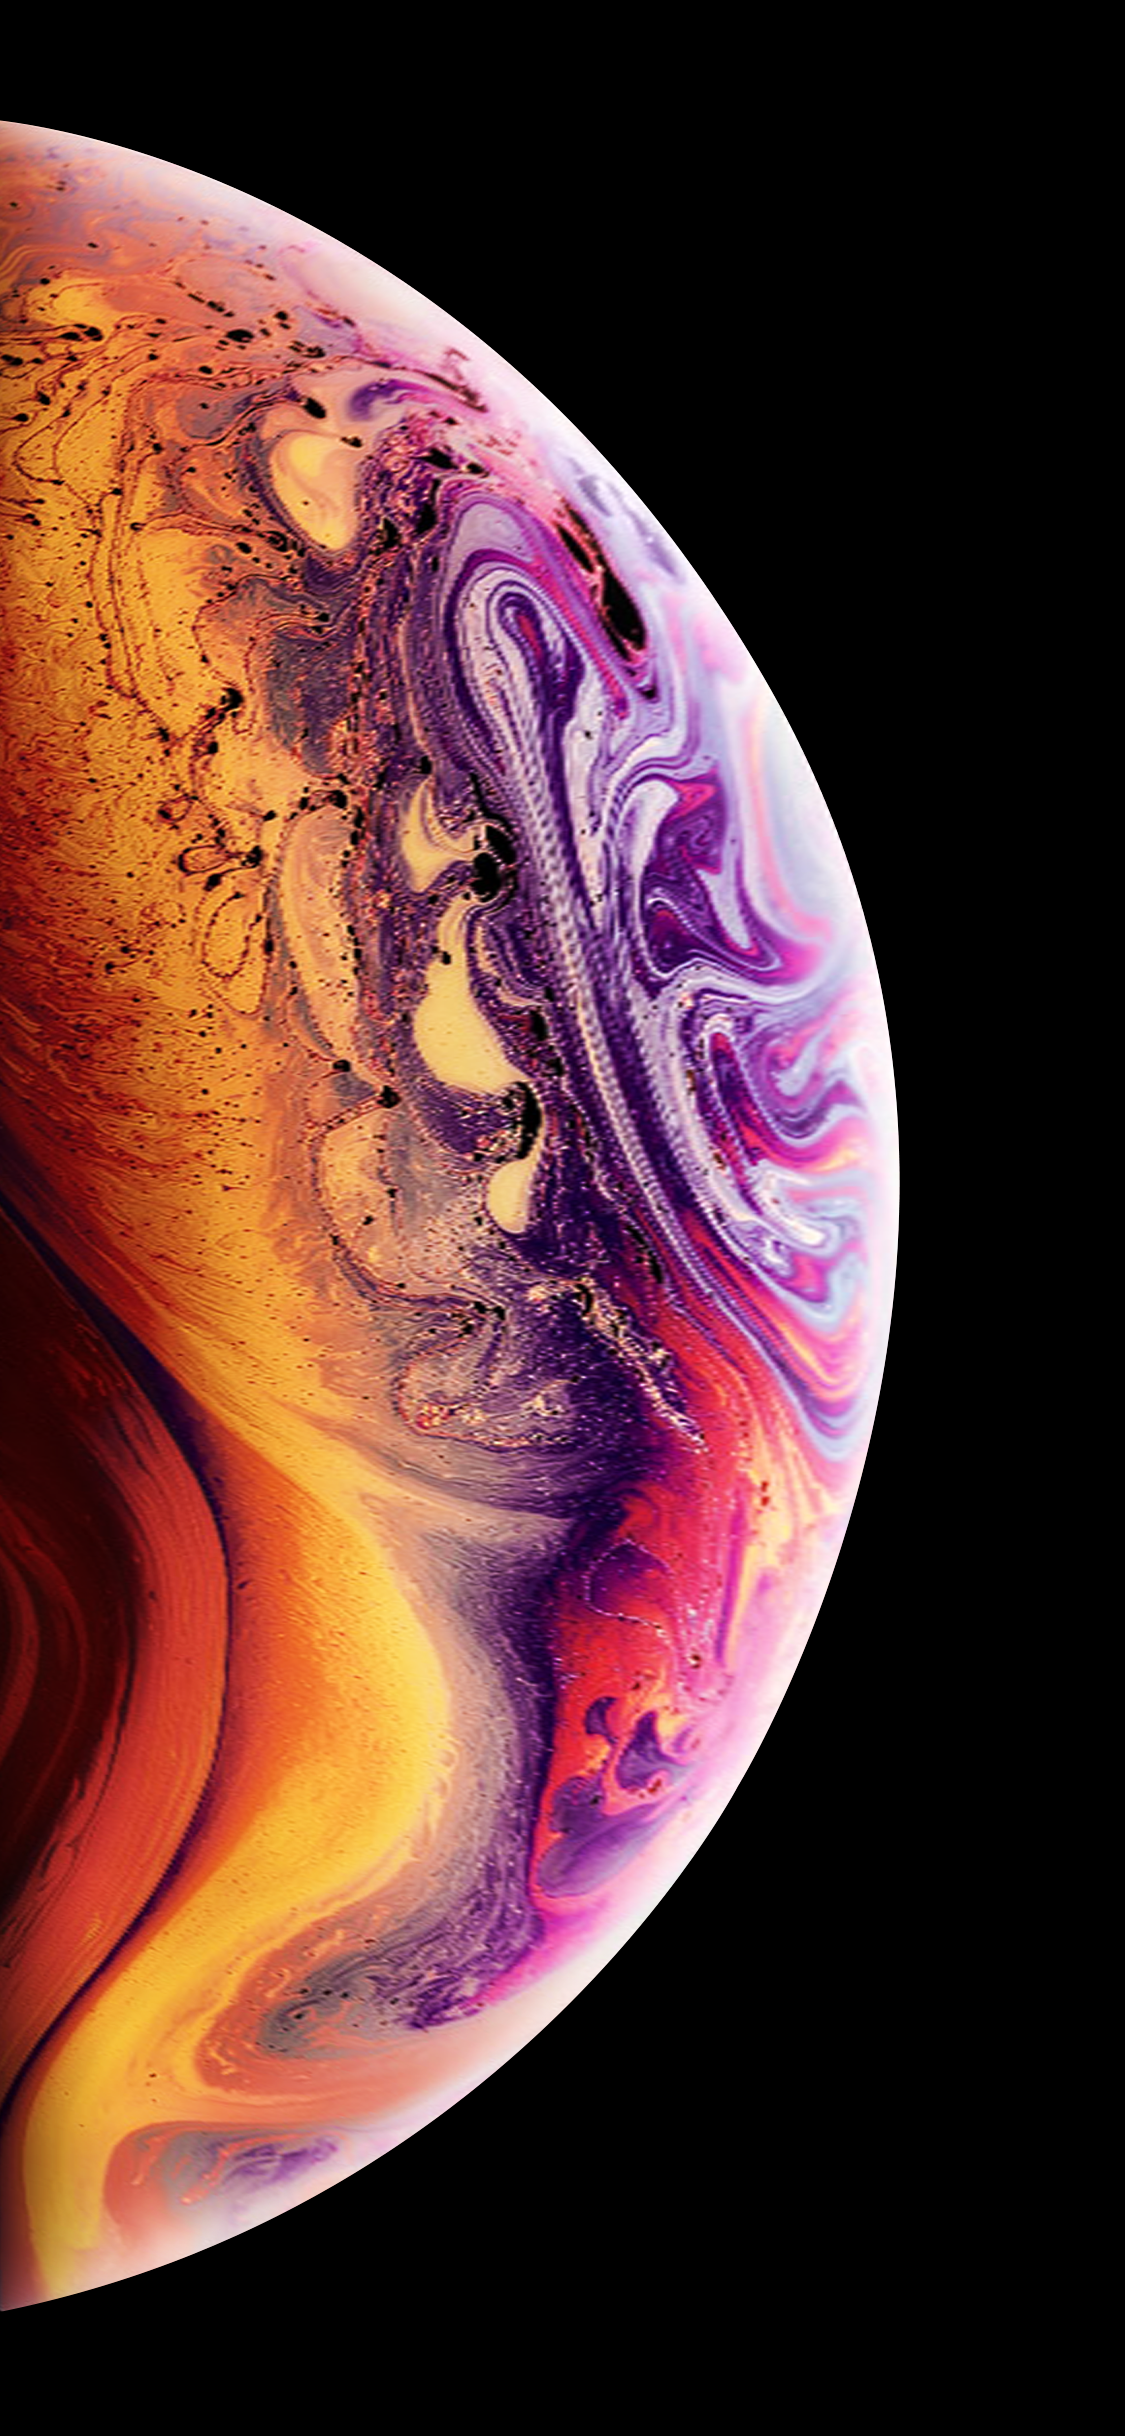 Download Iphone Xs Leaked Stock Wallpaper Update Droidviews